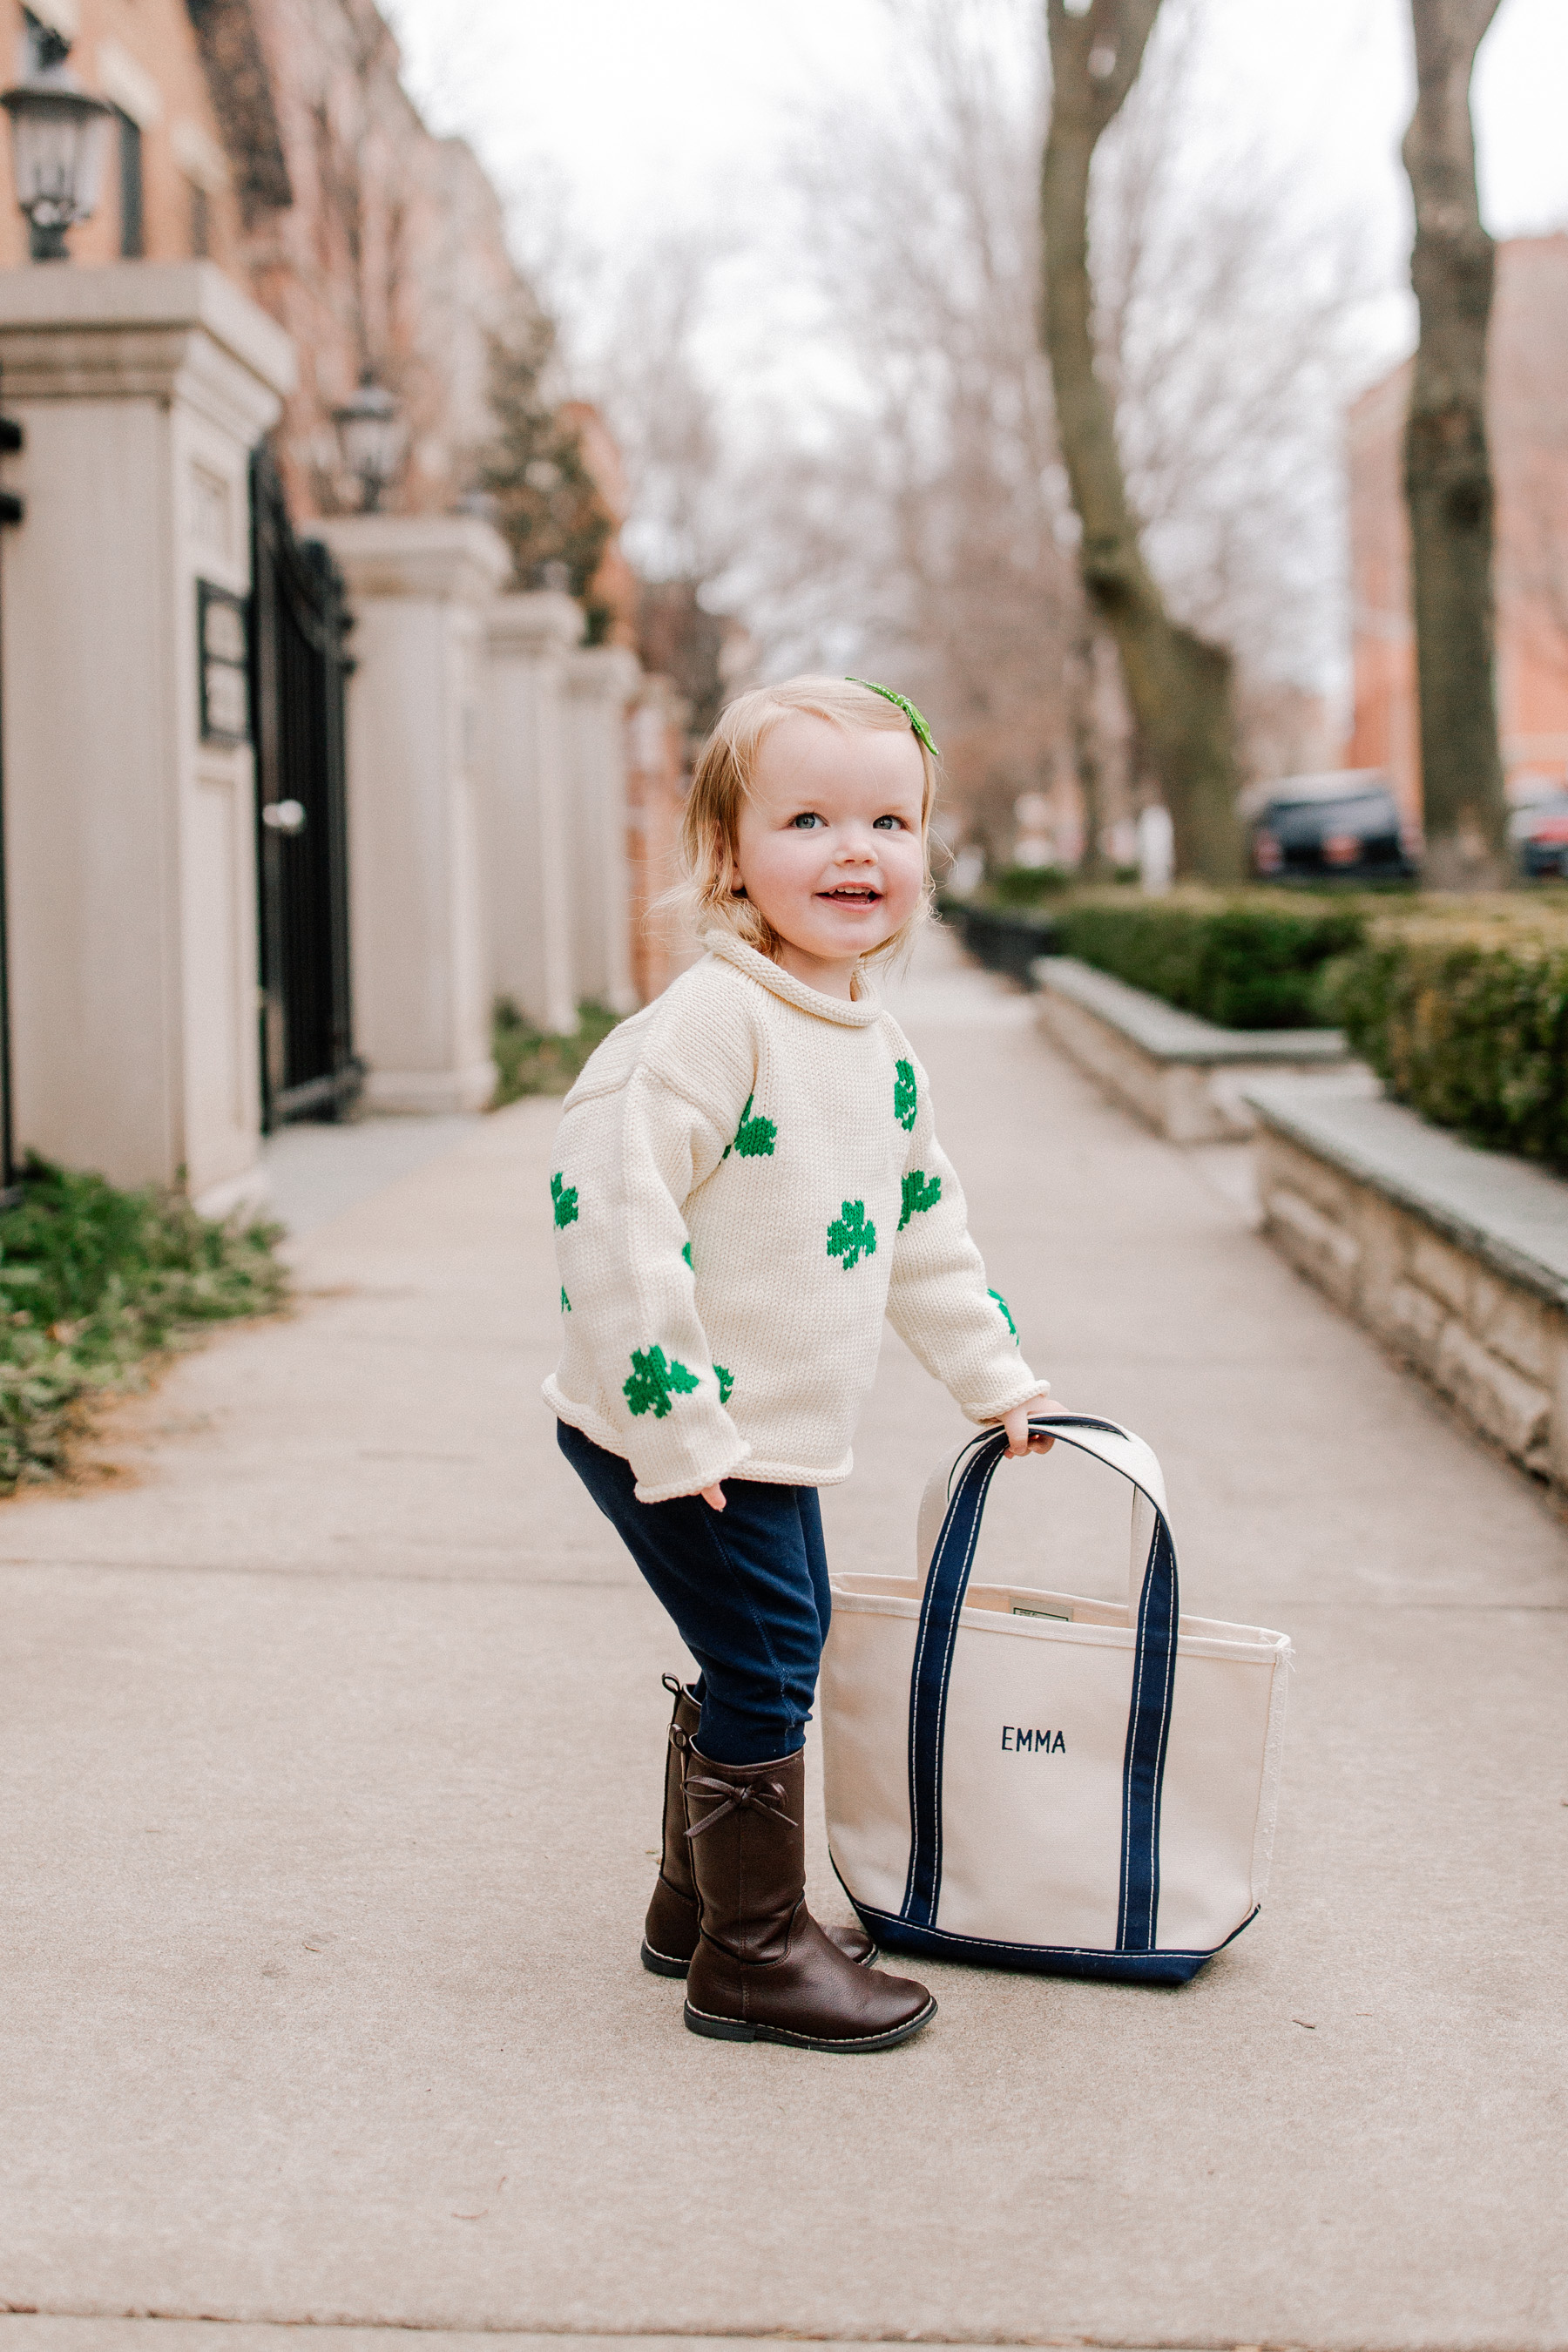 Emma's Outfit: Claver Shamrock Sweater / L.L. Bean Tote c/o / Gap Kids Jeggings and Boots / Little Makes Big Bow c/o